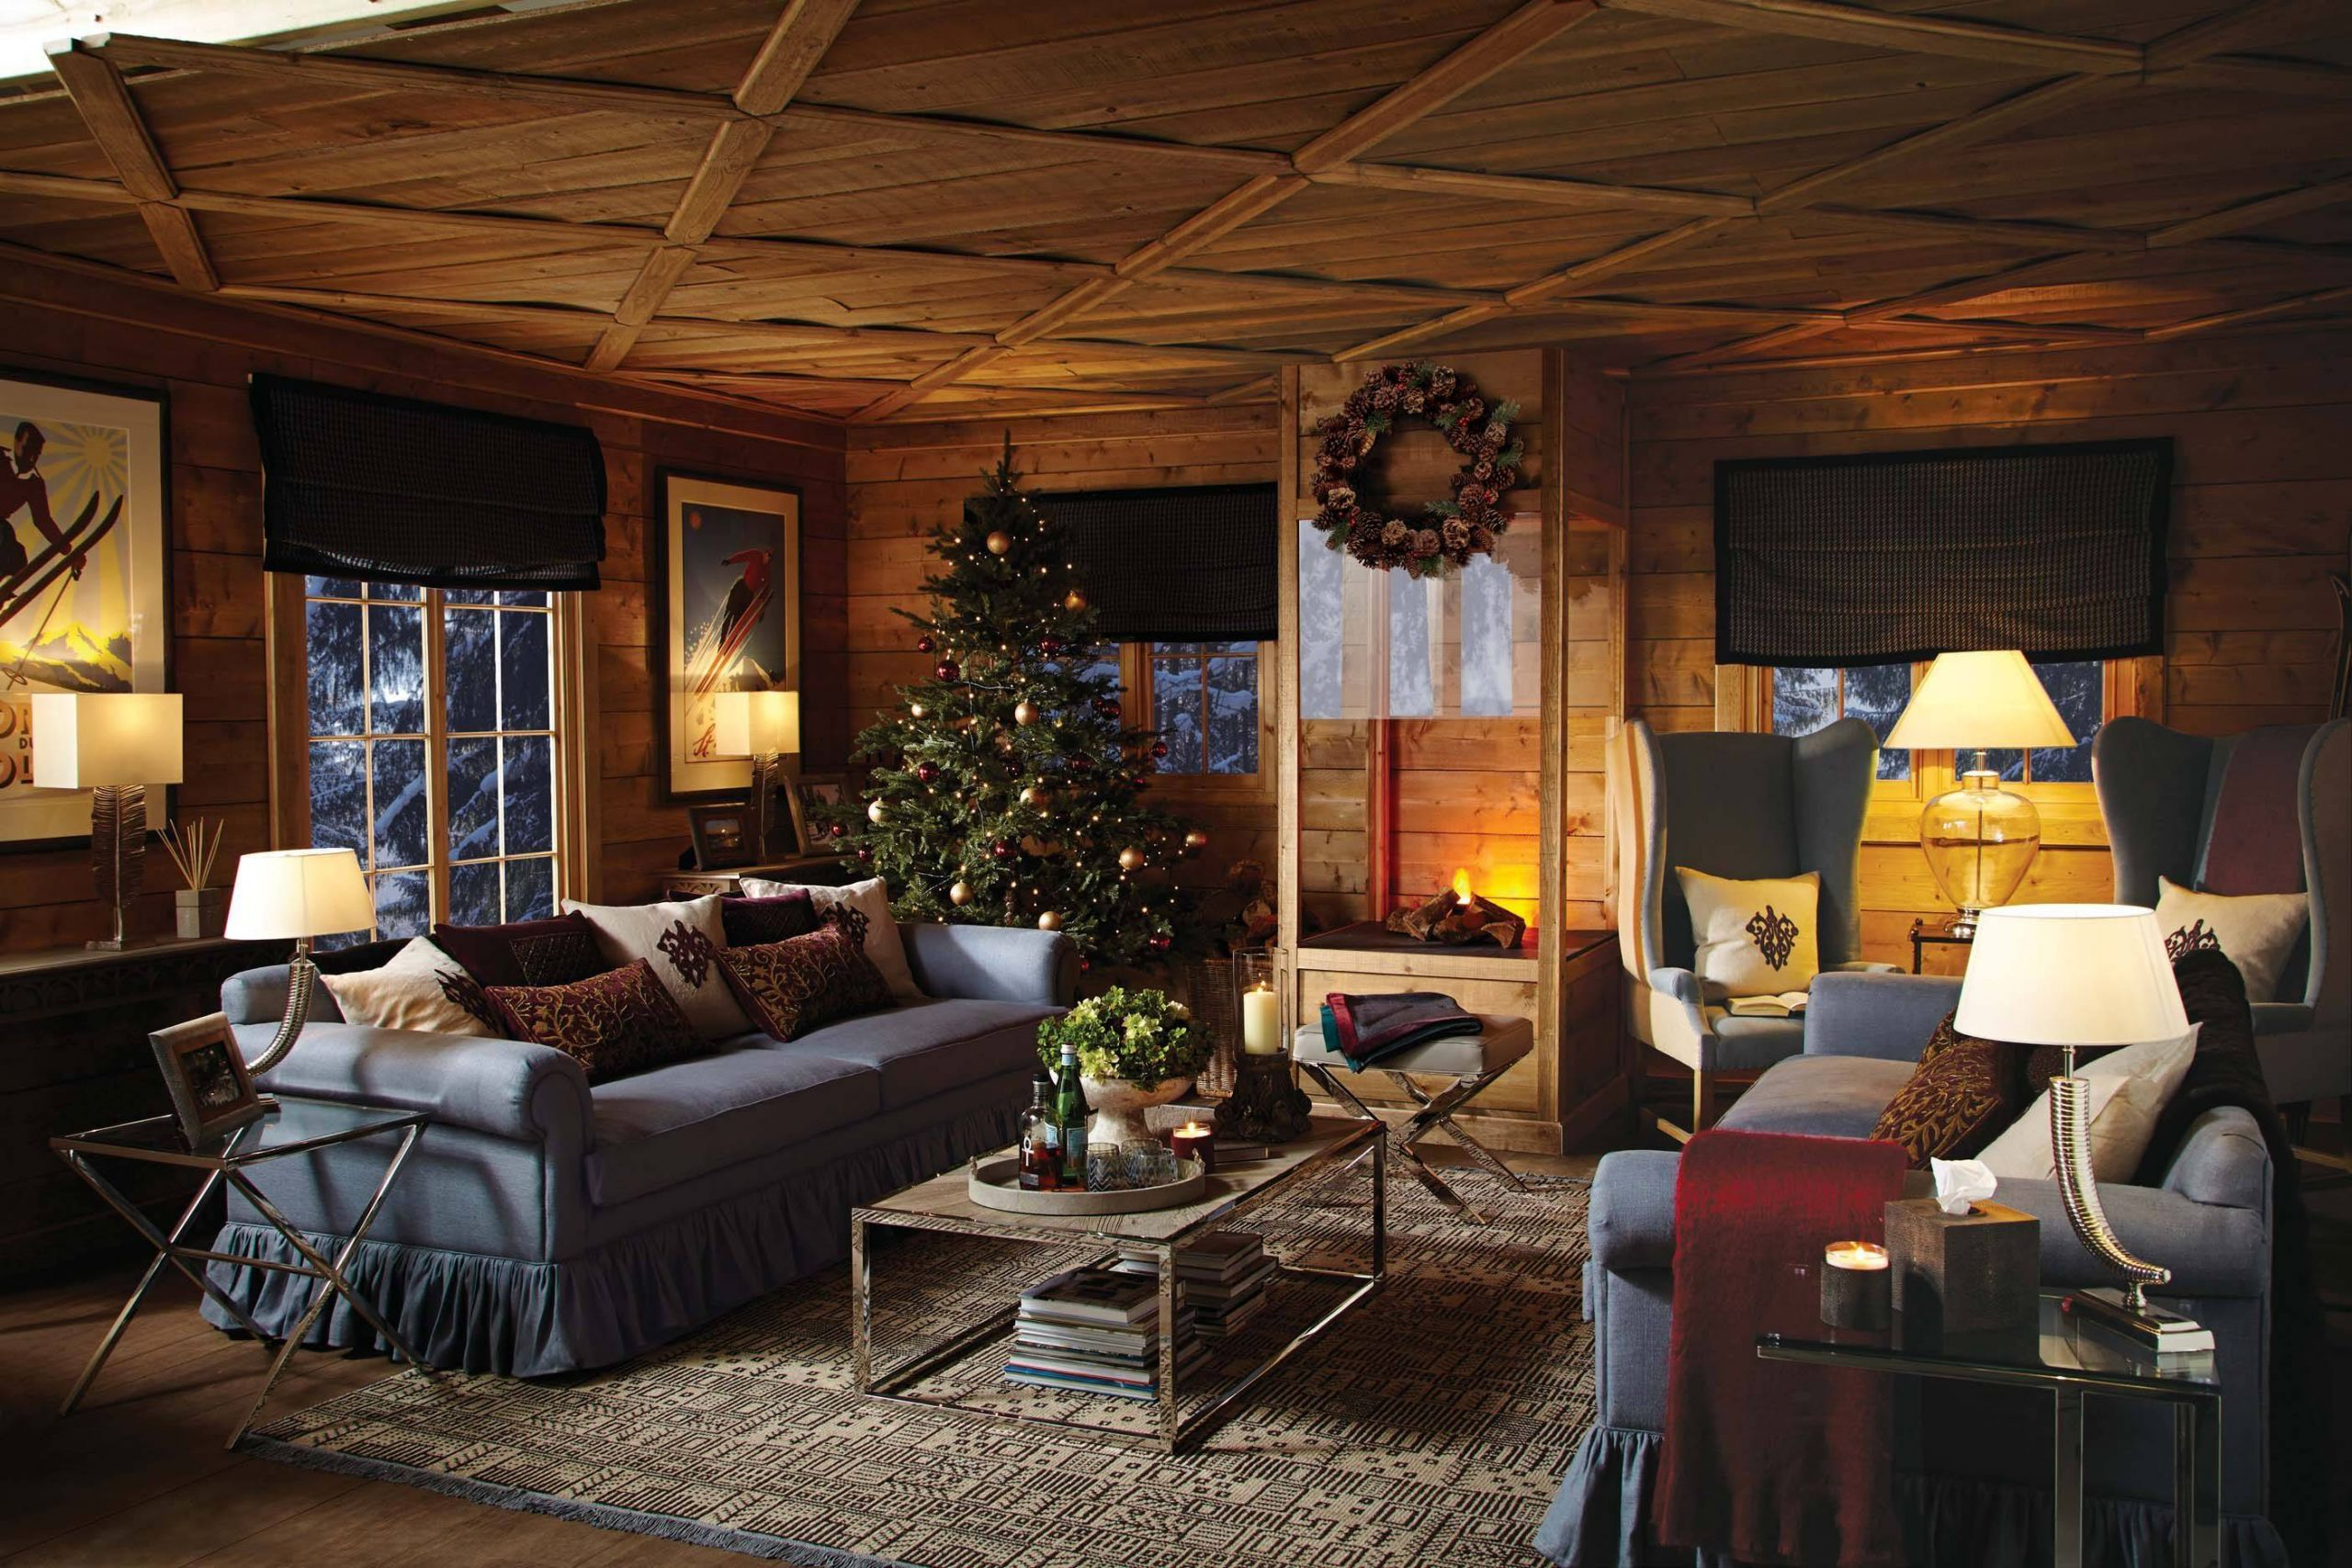 Cabin Decor New Log Cabin at Christmas Uplighting and soft Furnishings